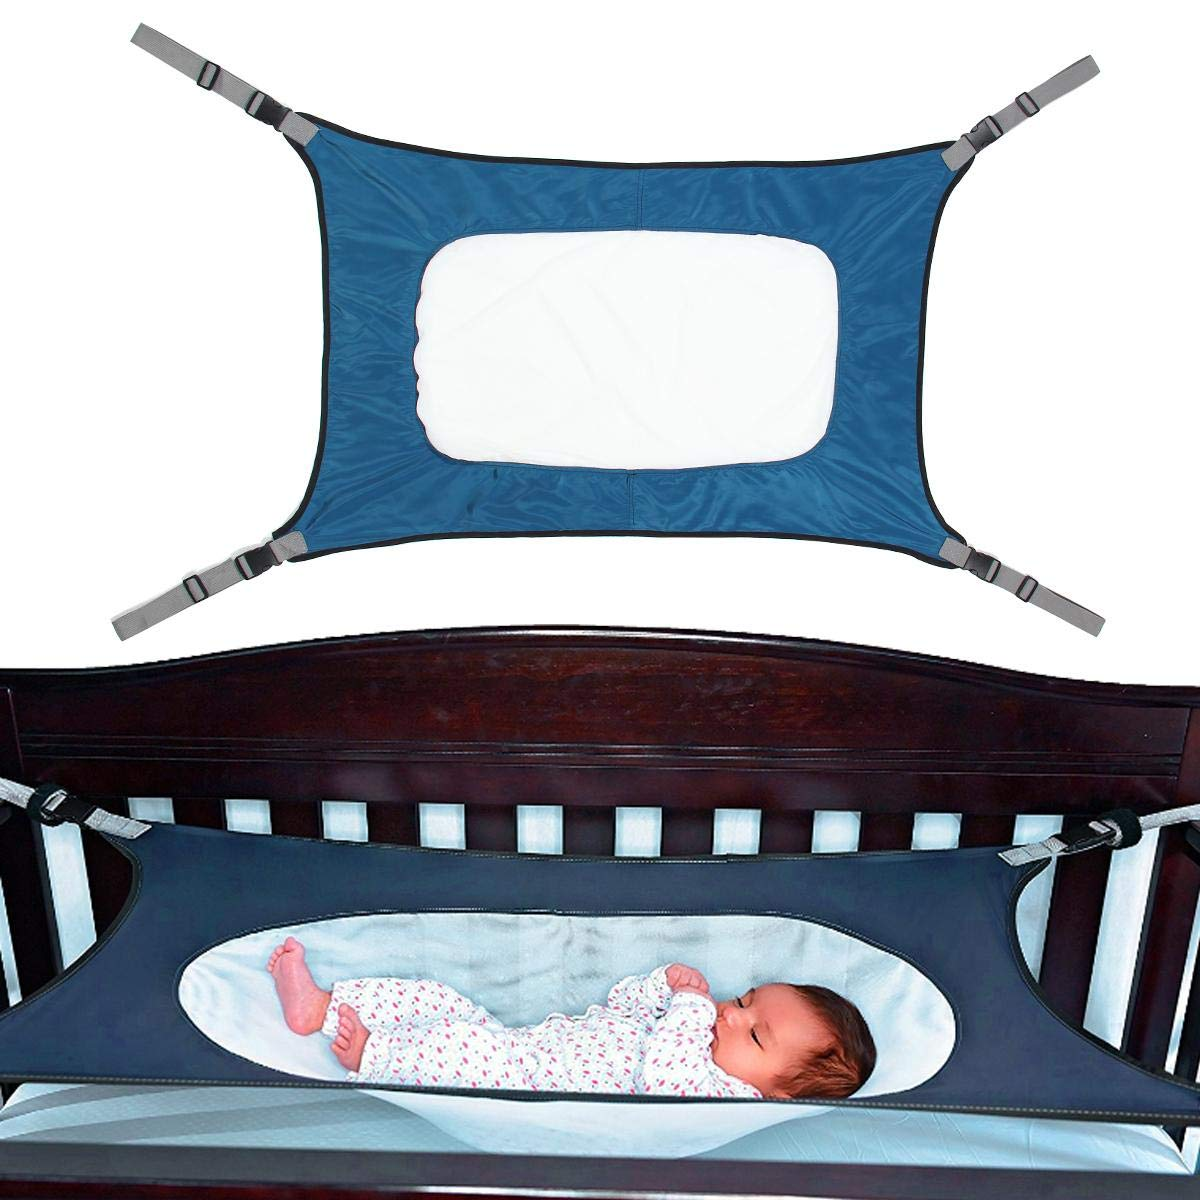 Crib Hammock, Aolvo Baby Hammock for Crib Heavy Duty Elastic Newborn Nursery Hammock Bed Comfortable Universal Sleeping Hammock with Adjustable Straps for Infant Bassinet Wombs, 0-12 Months (Blue)